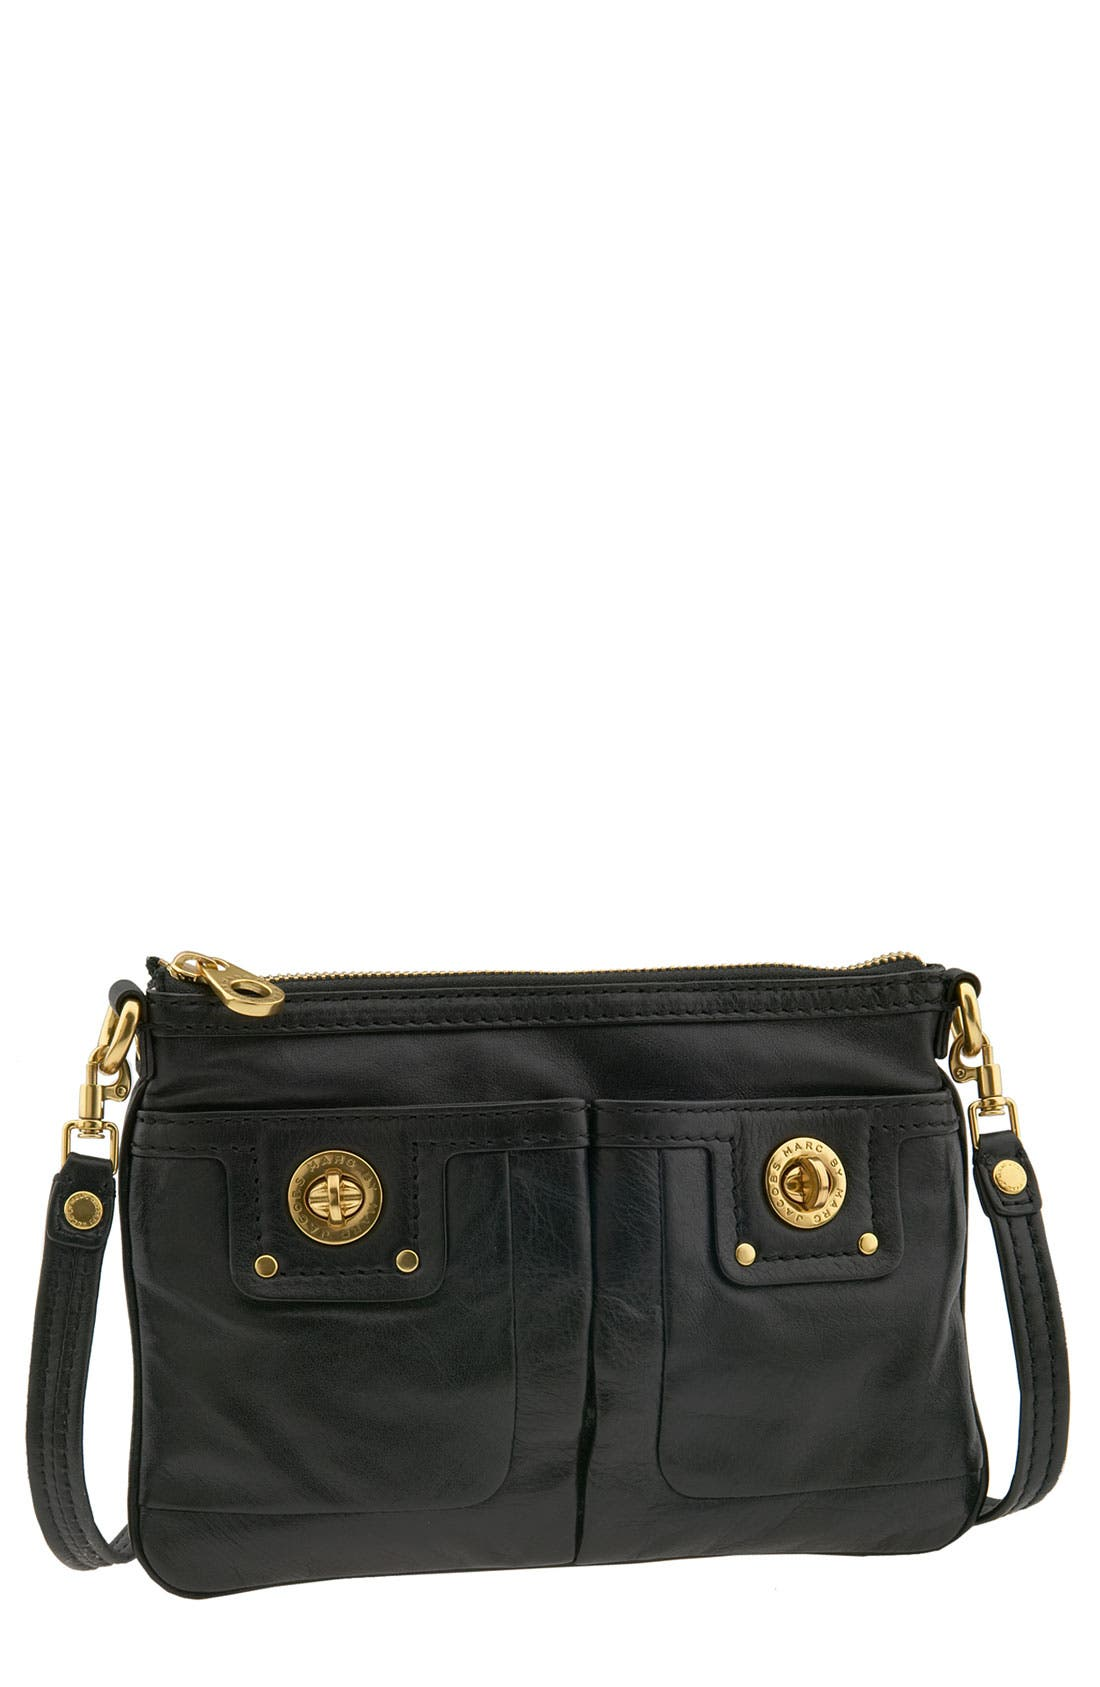 MARC JACOBS MARC BY MARC JACOBS 'Percy' Turnlock Crossbody Bag, Main, color, 001